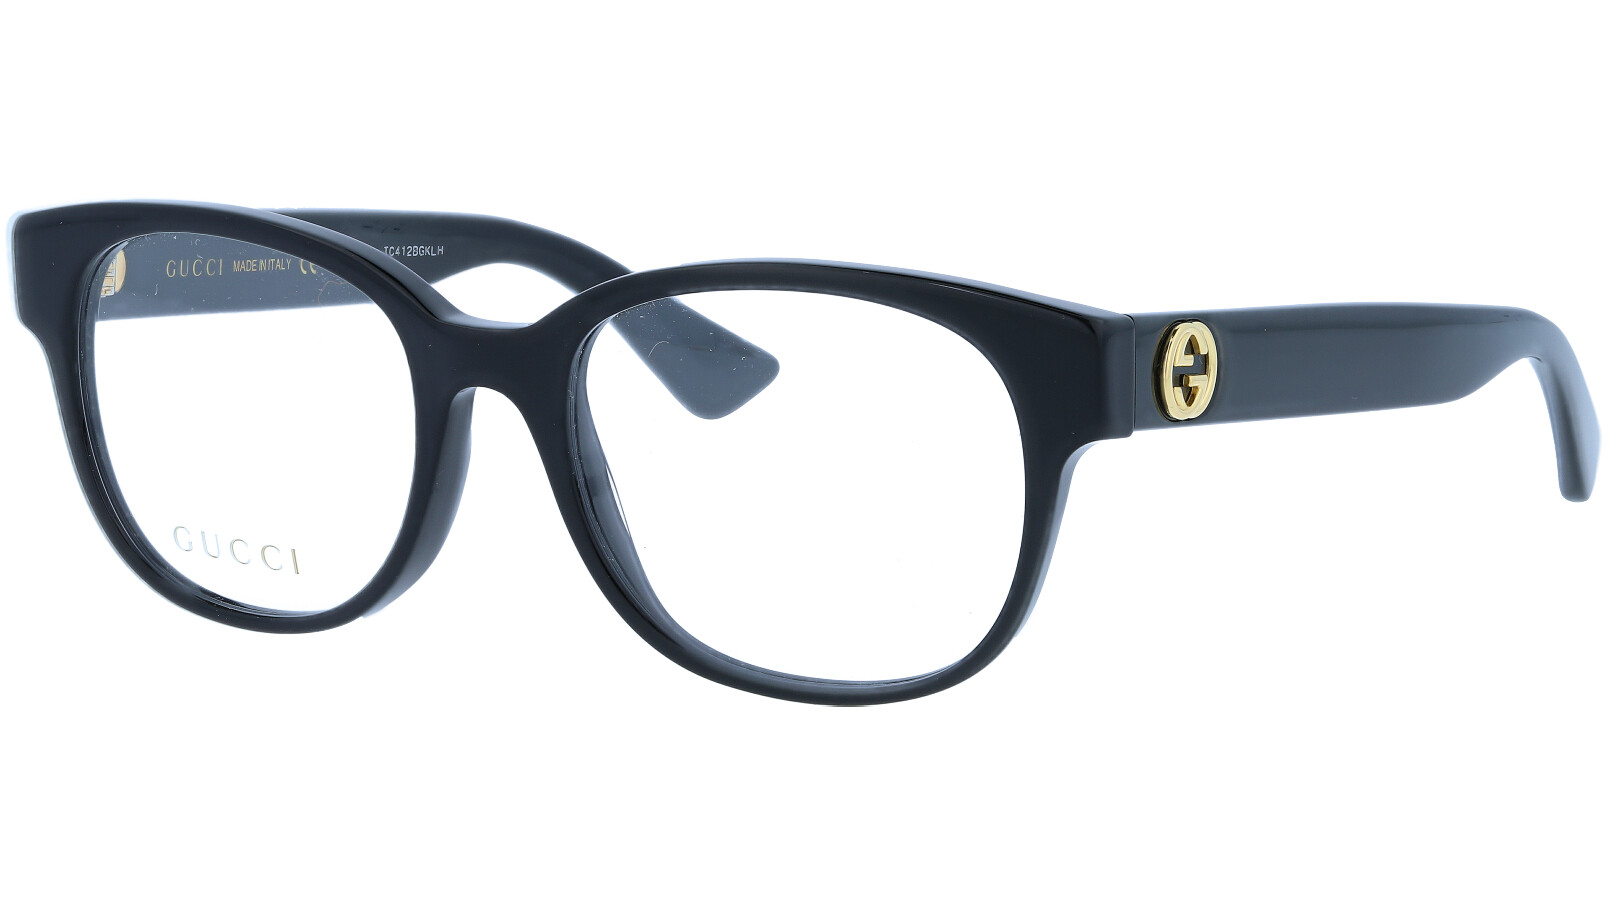 GUCCI GG0040O 001 51 BLACK Glasses